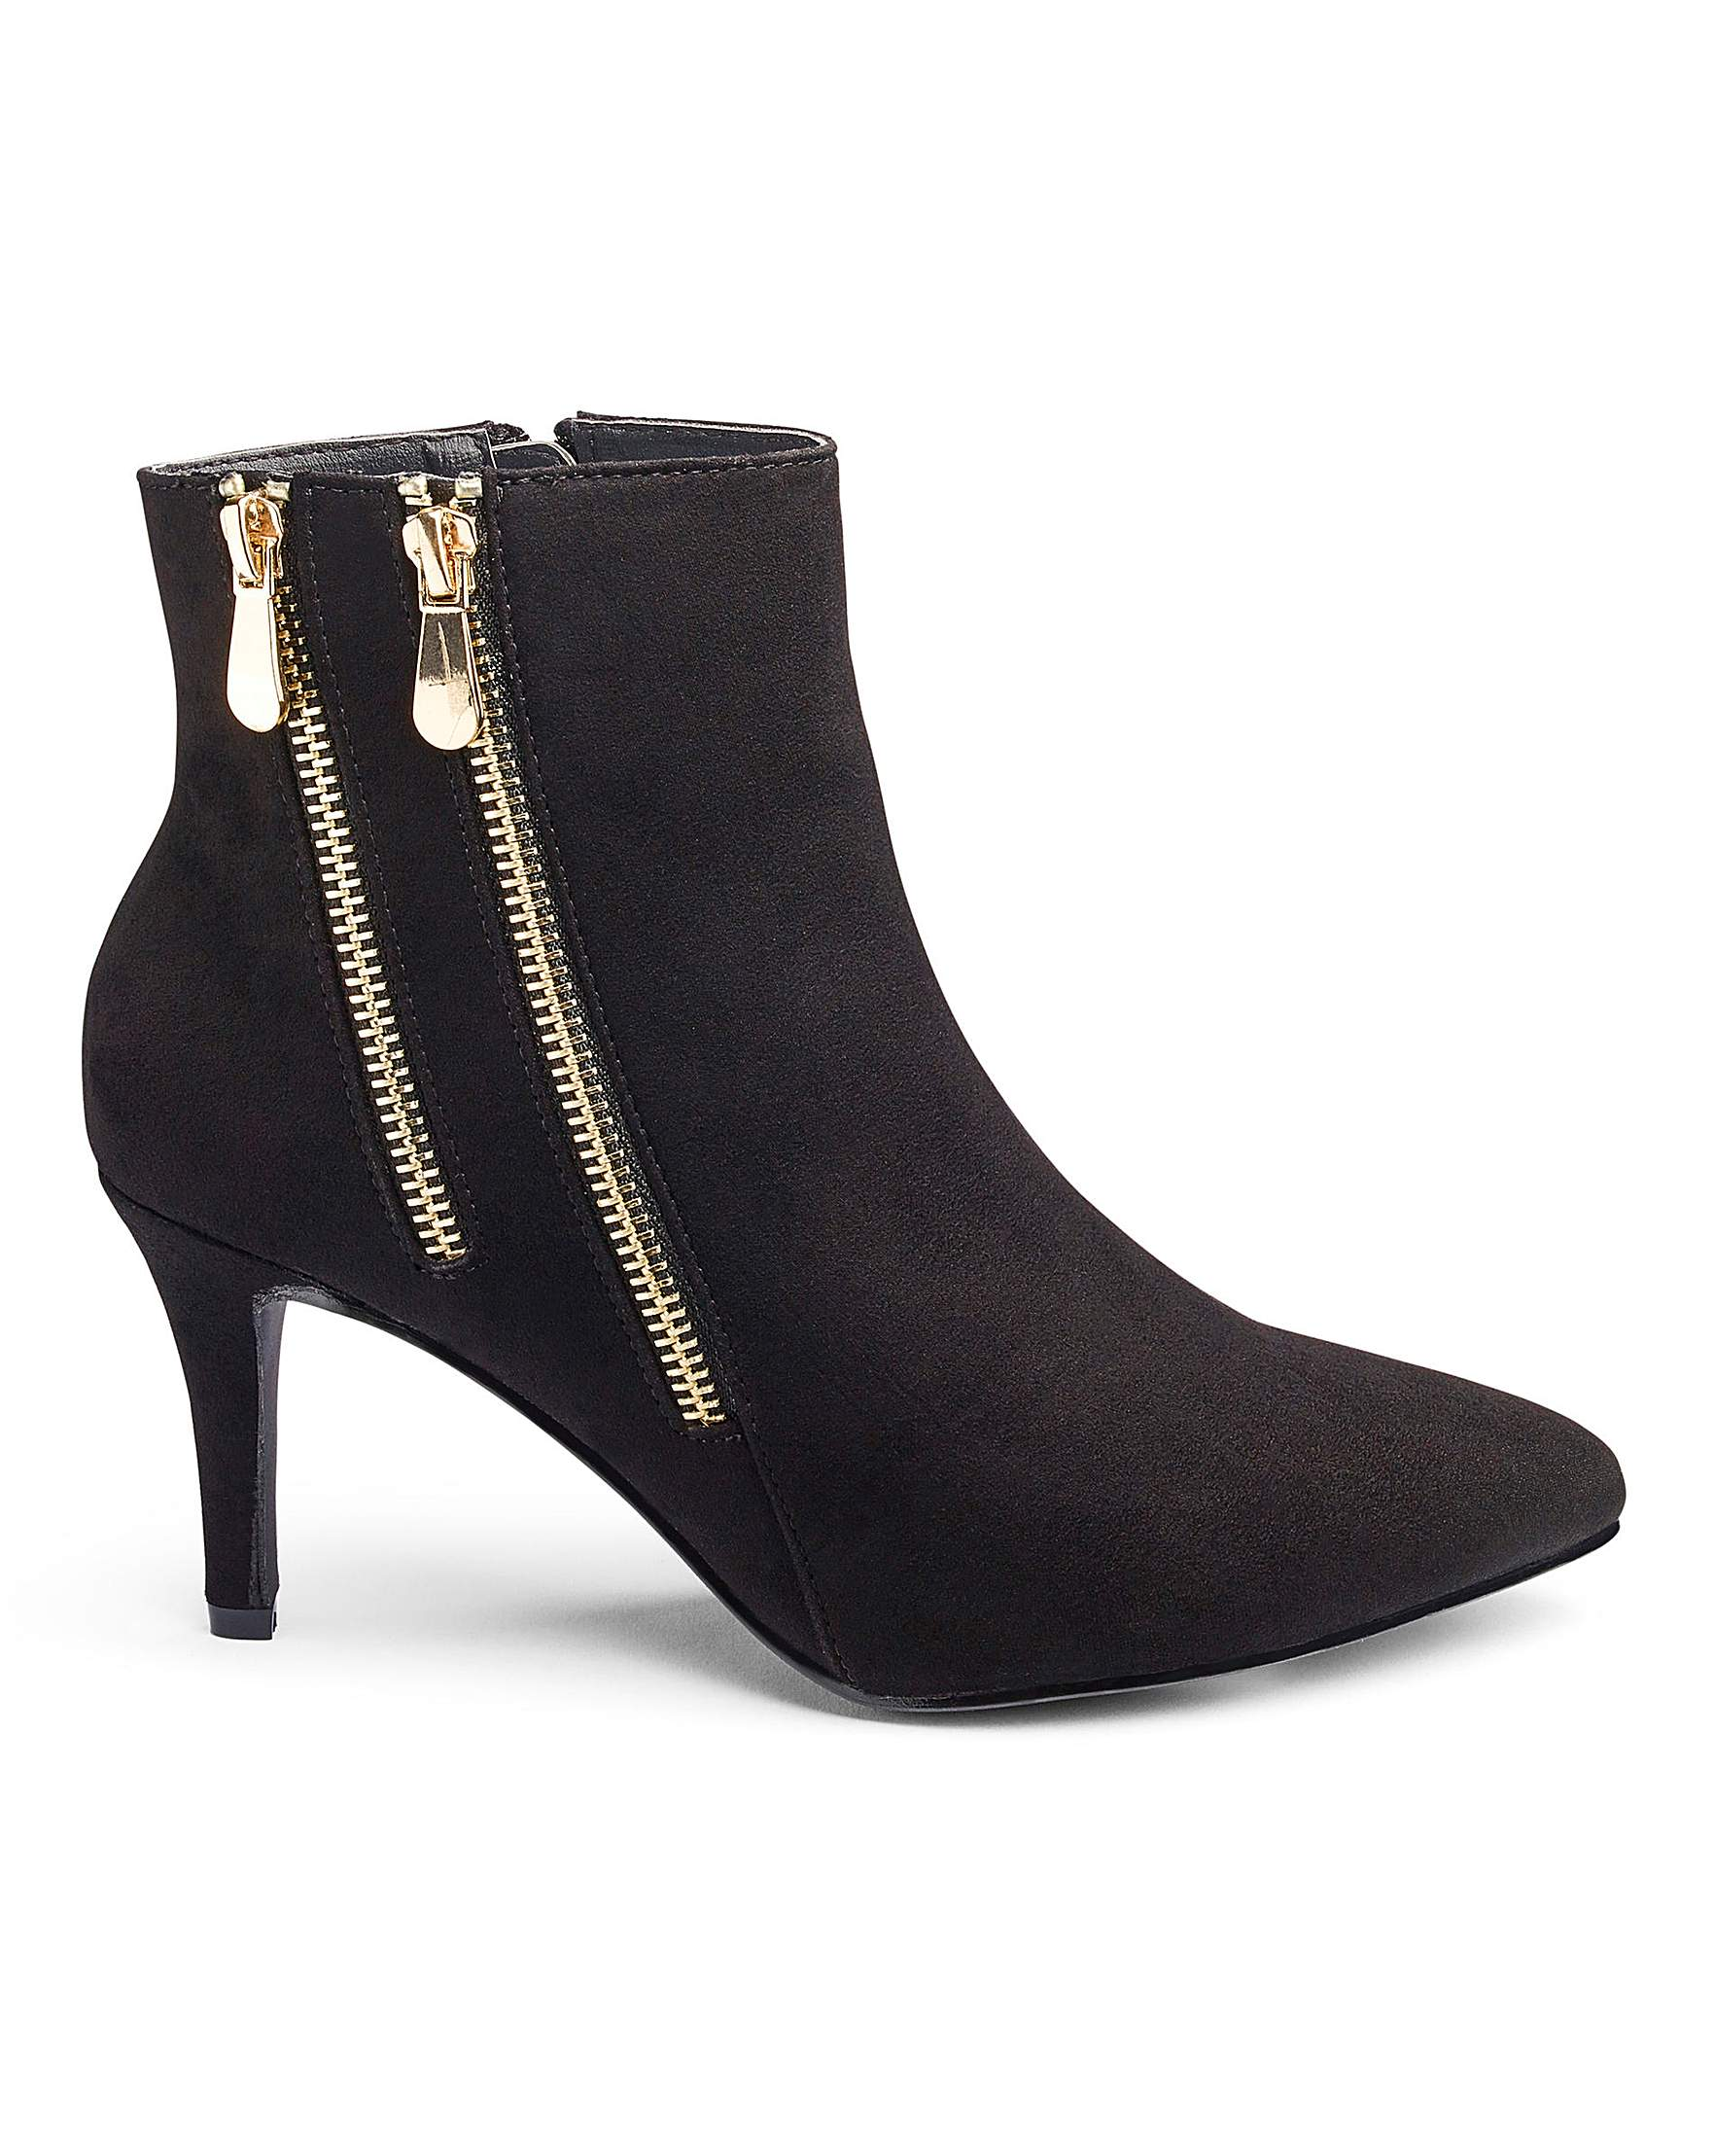 jd williams ankle boots